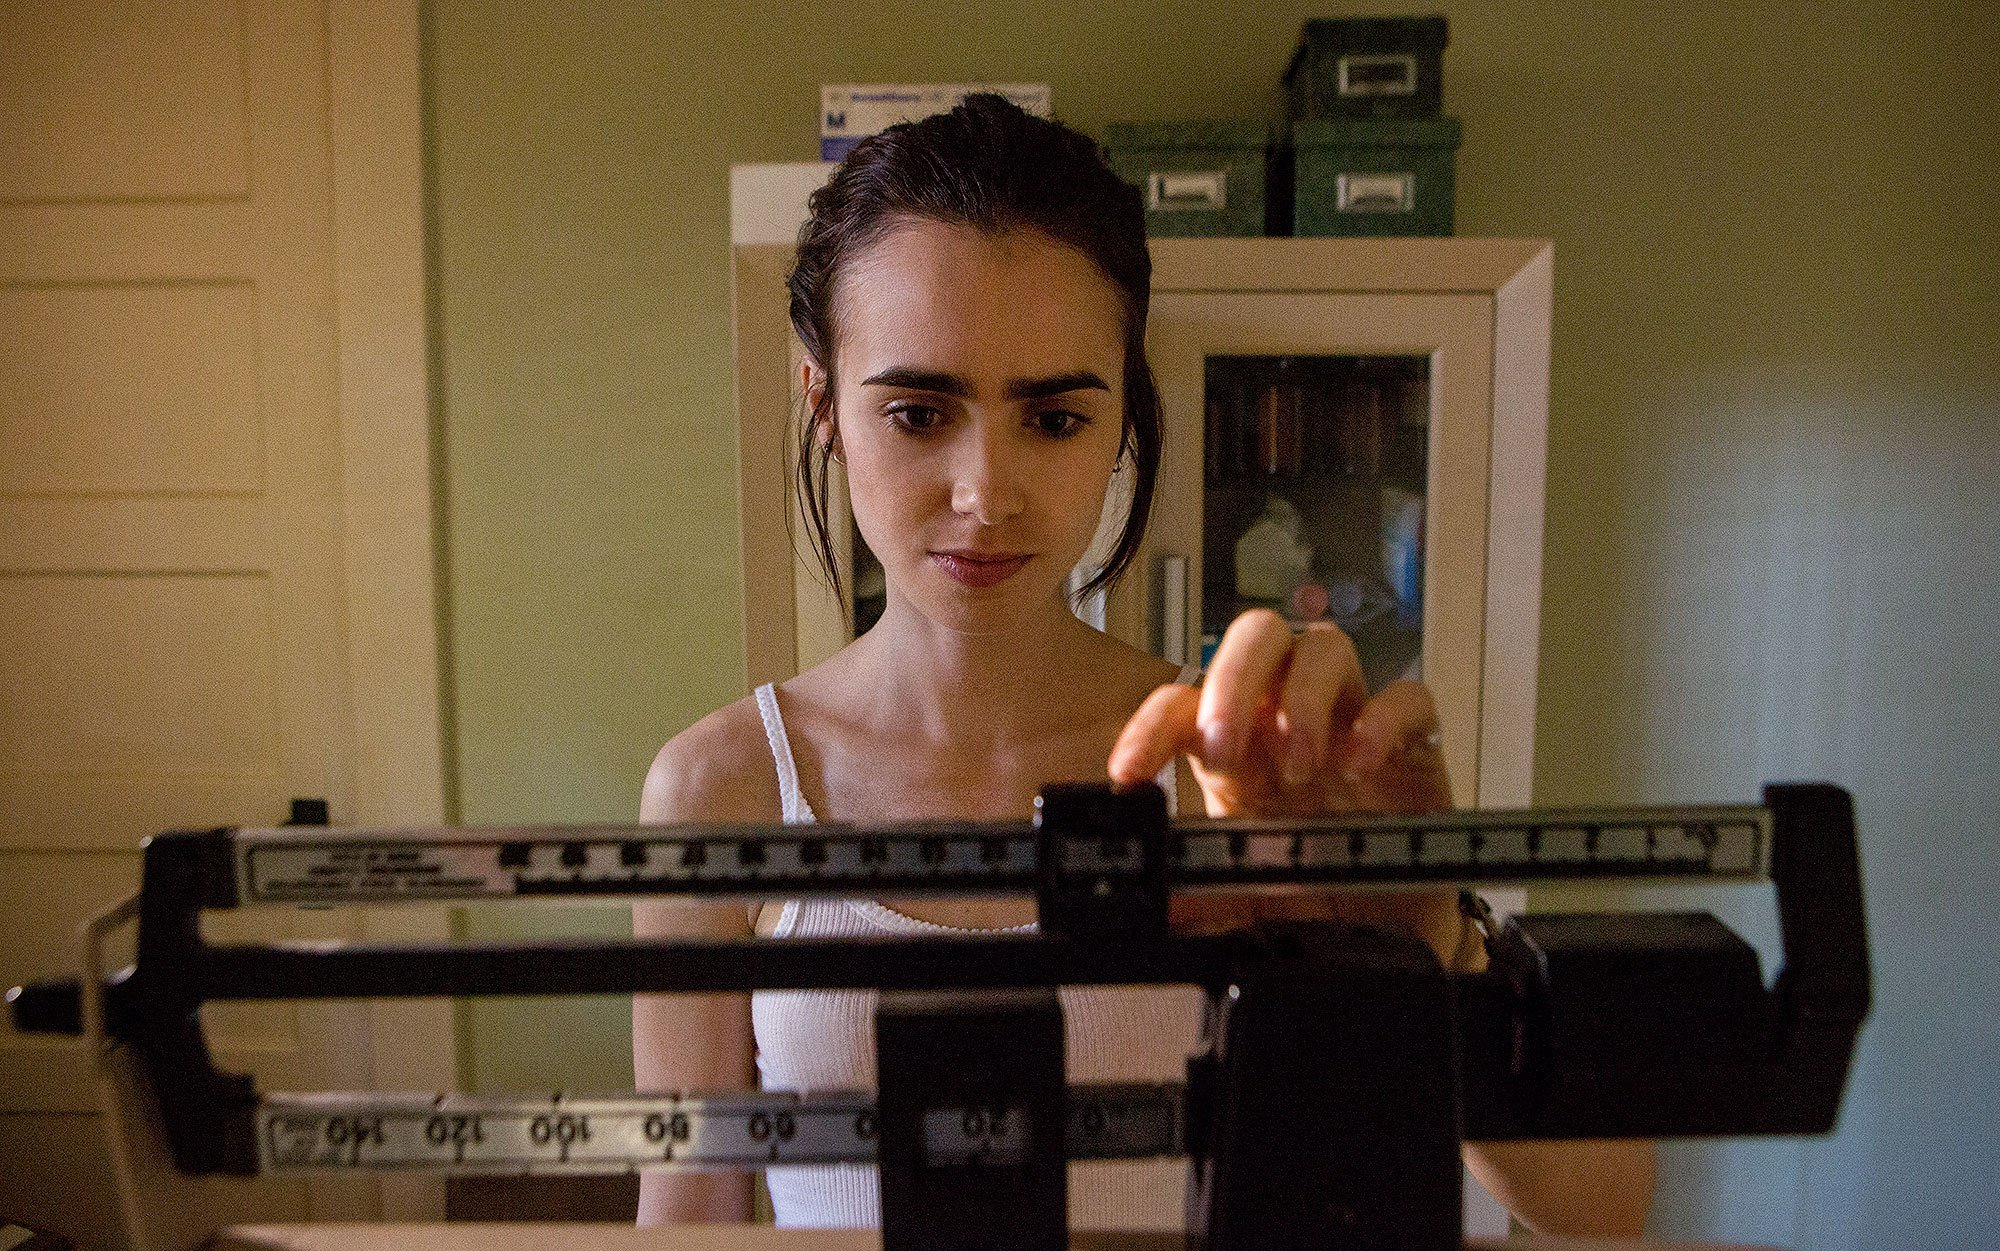 """Leaders in the eating disorder community say that the new film """"To the Bone"""" is helping increase awareness and conversations around the illness, but some worry about its potential effects. (Netflix)"""